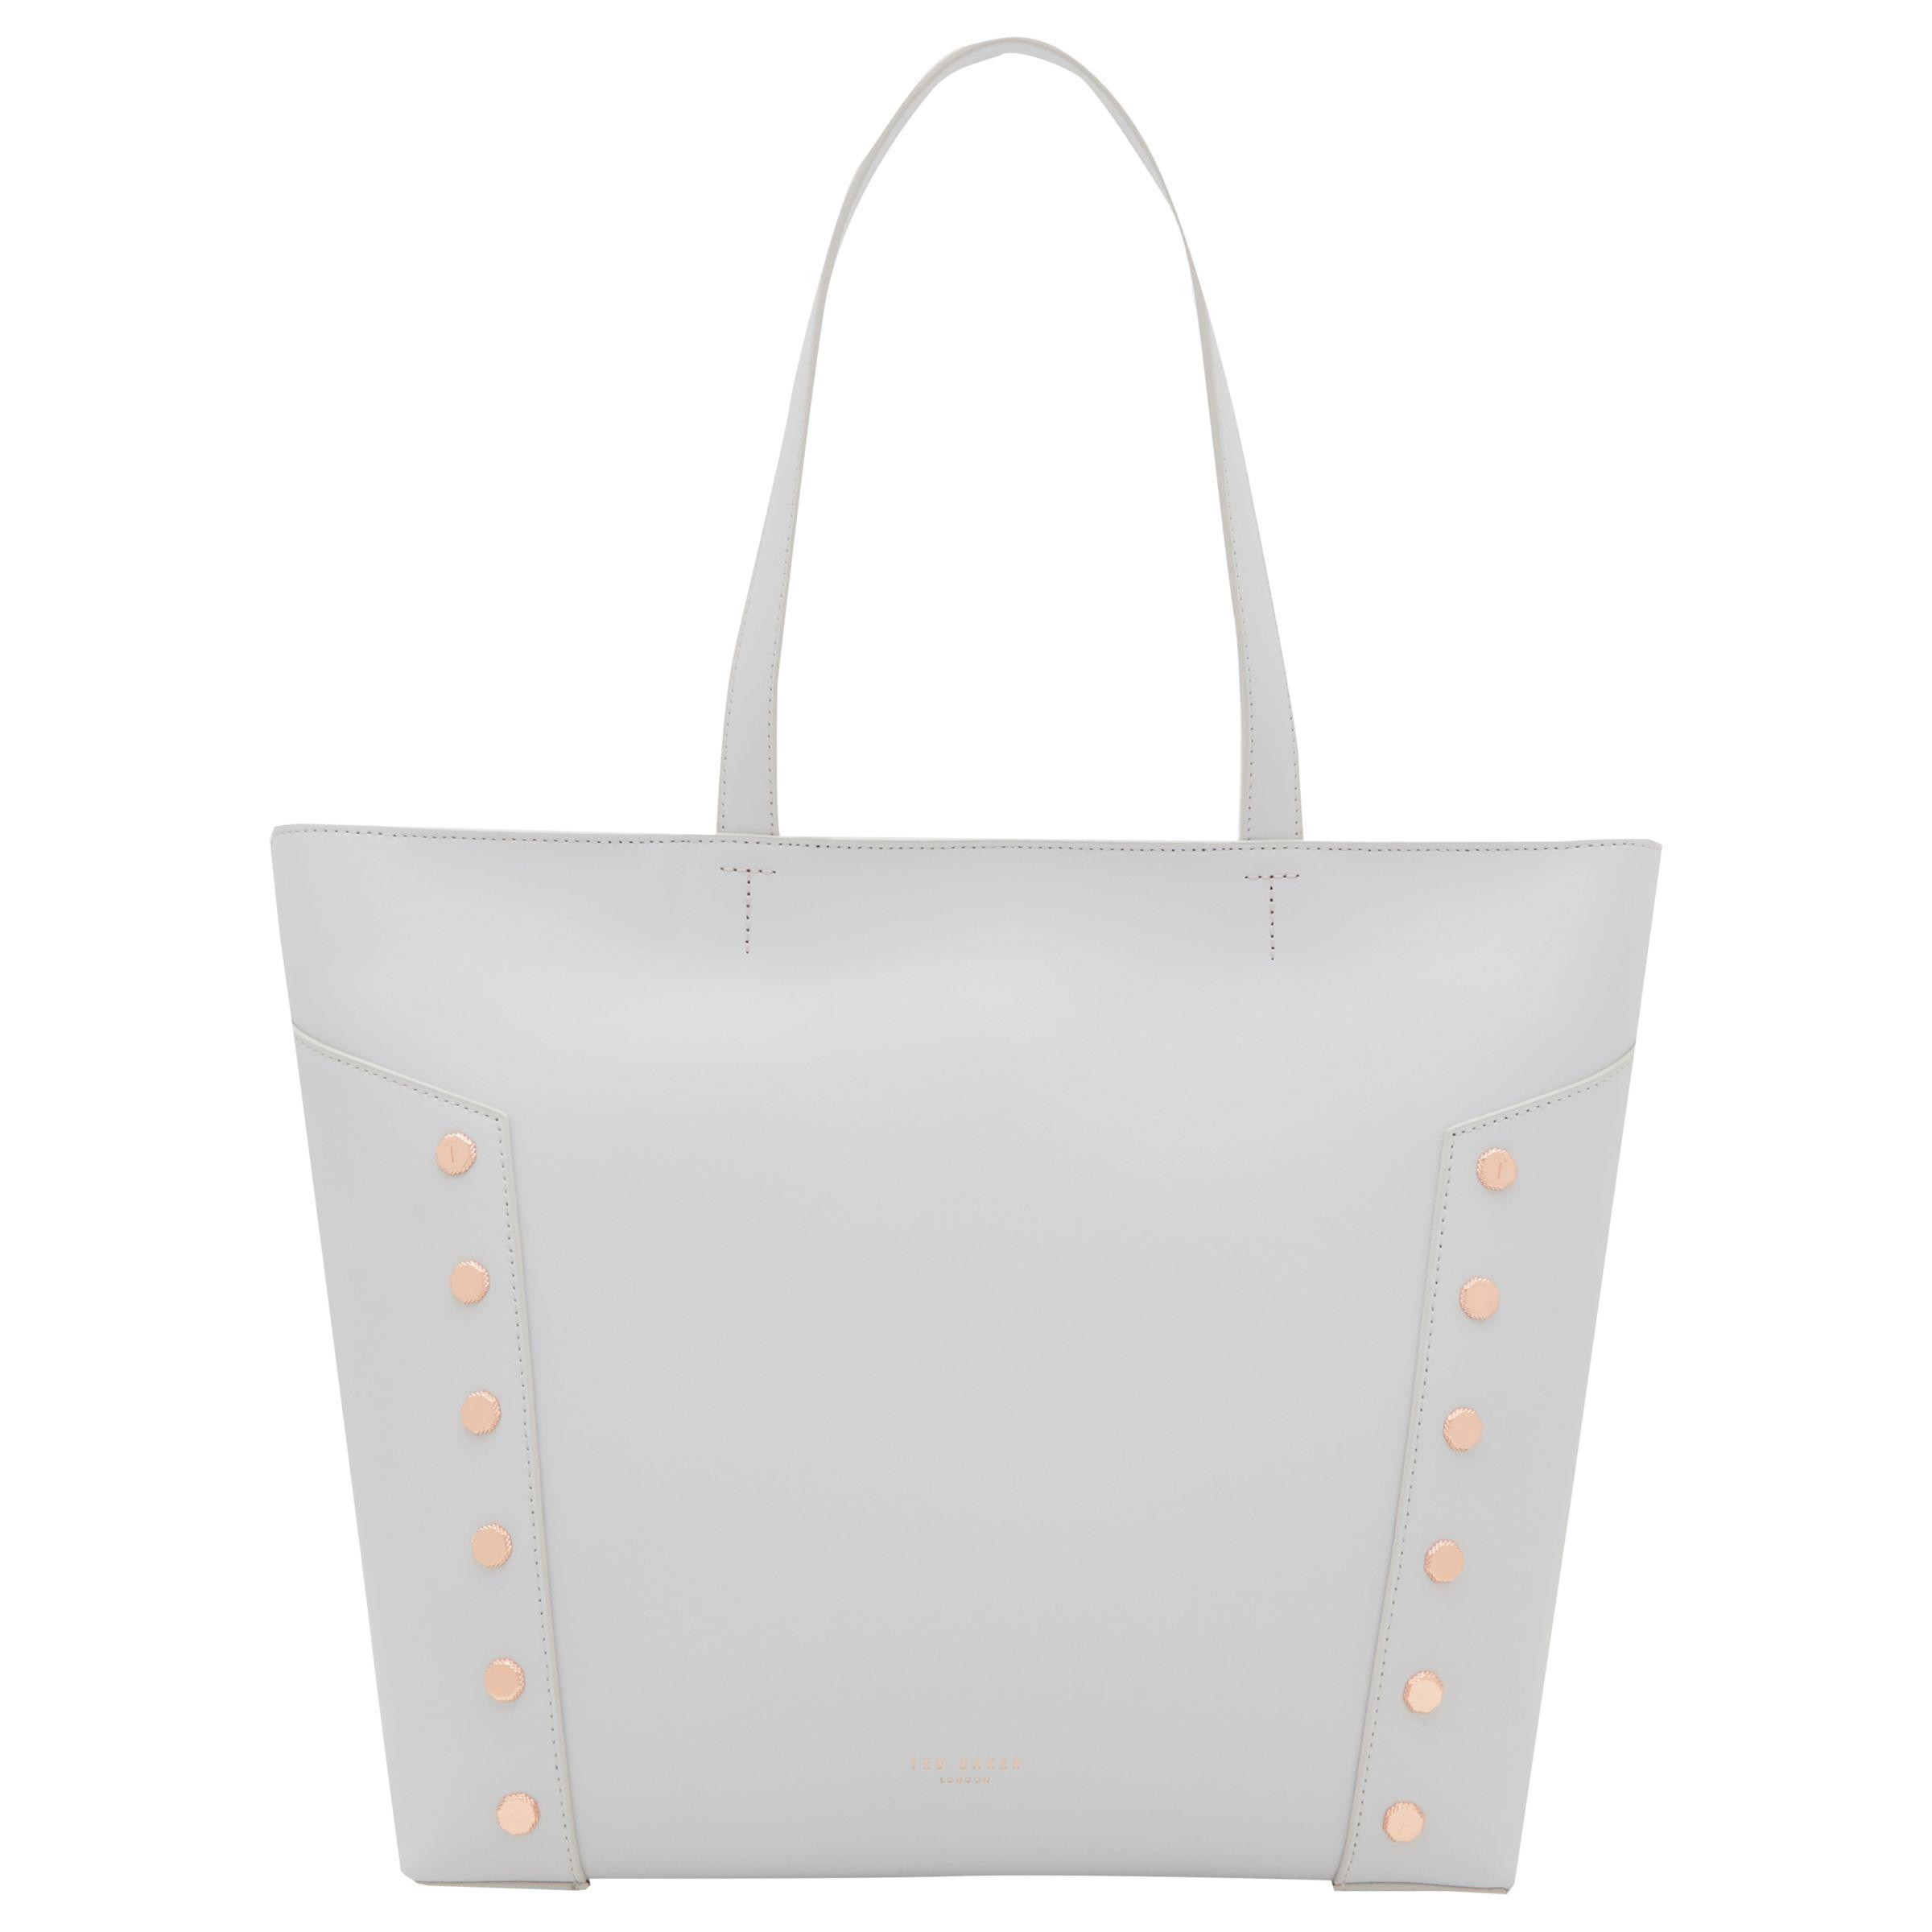 4c707d4d5 Ted Baker Tamiko Stud Edge Leather Shopper Bag in Gray - Lyst